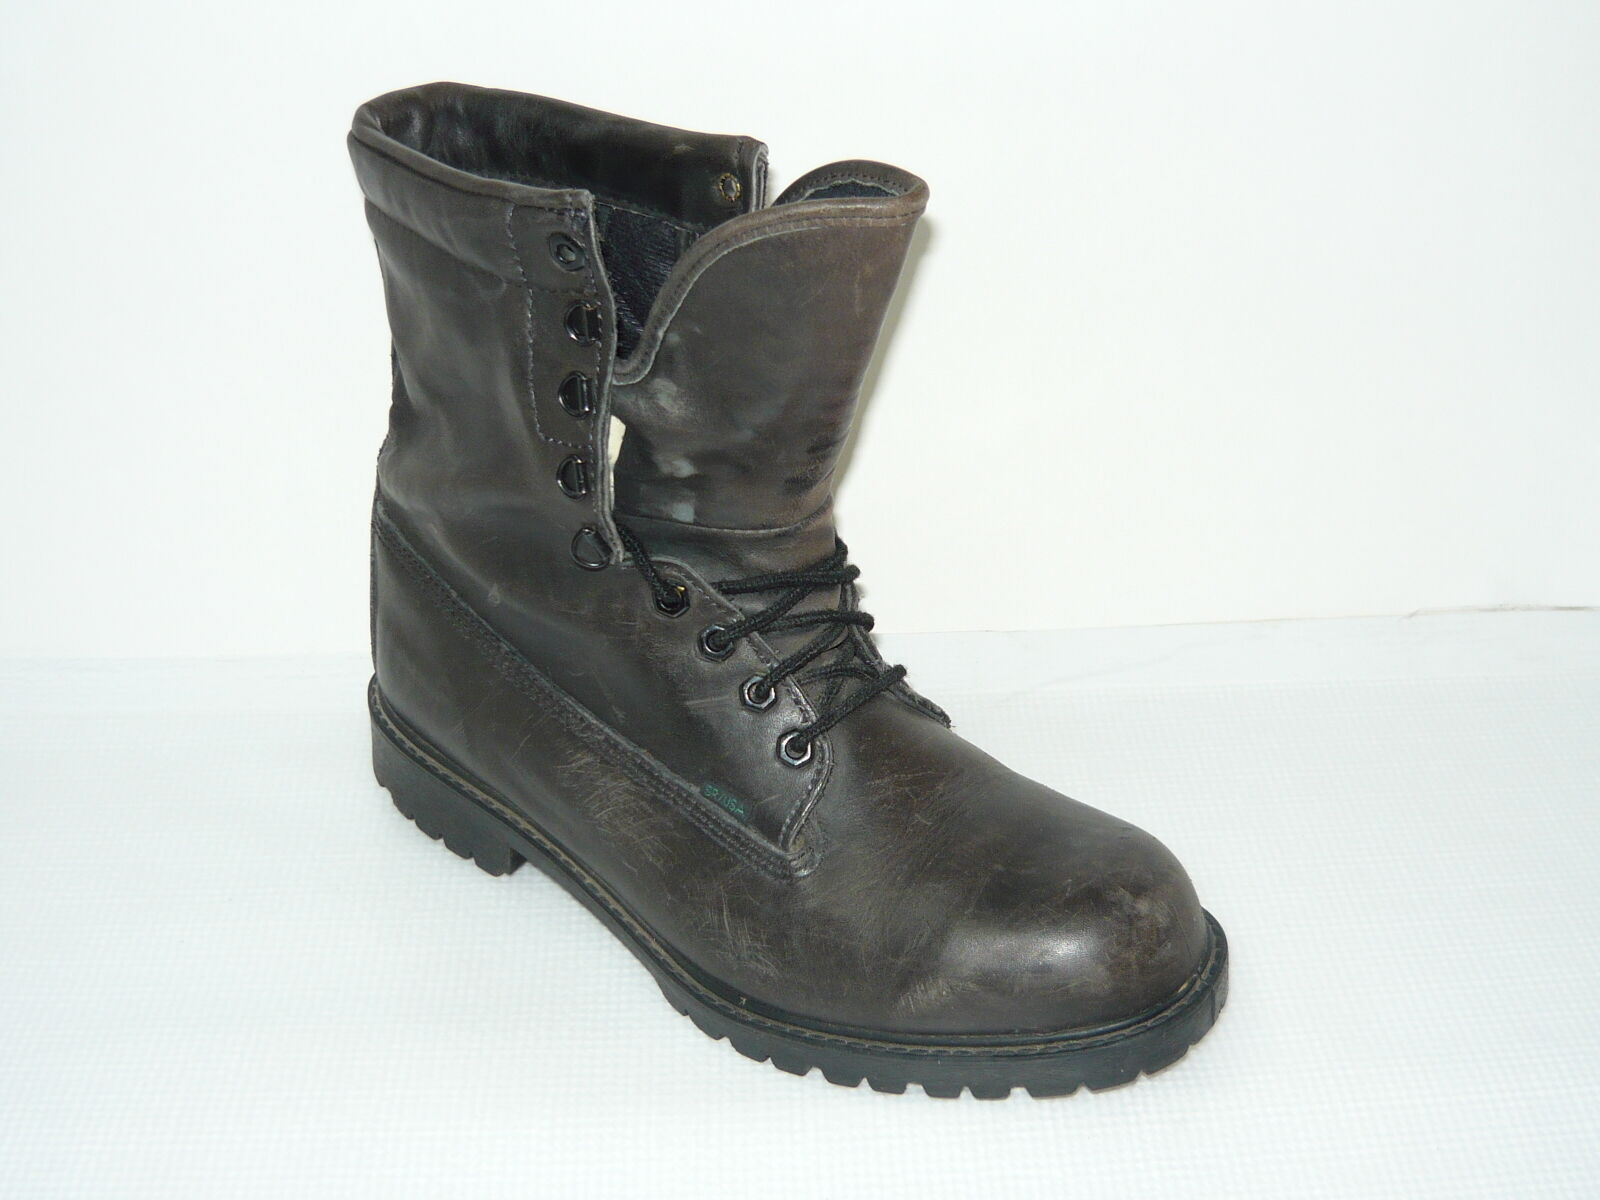 Bates Marble Brown  Men's  Casual Leather Boots Size 9.5